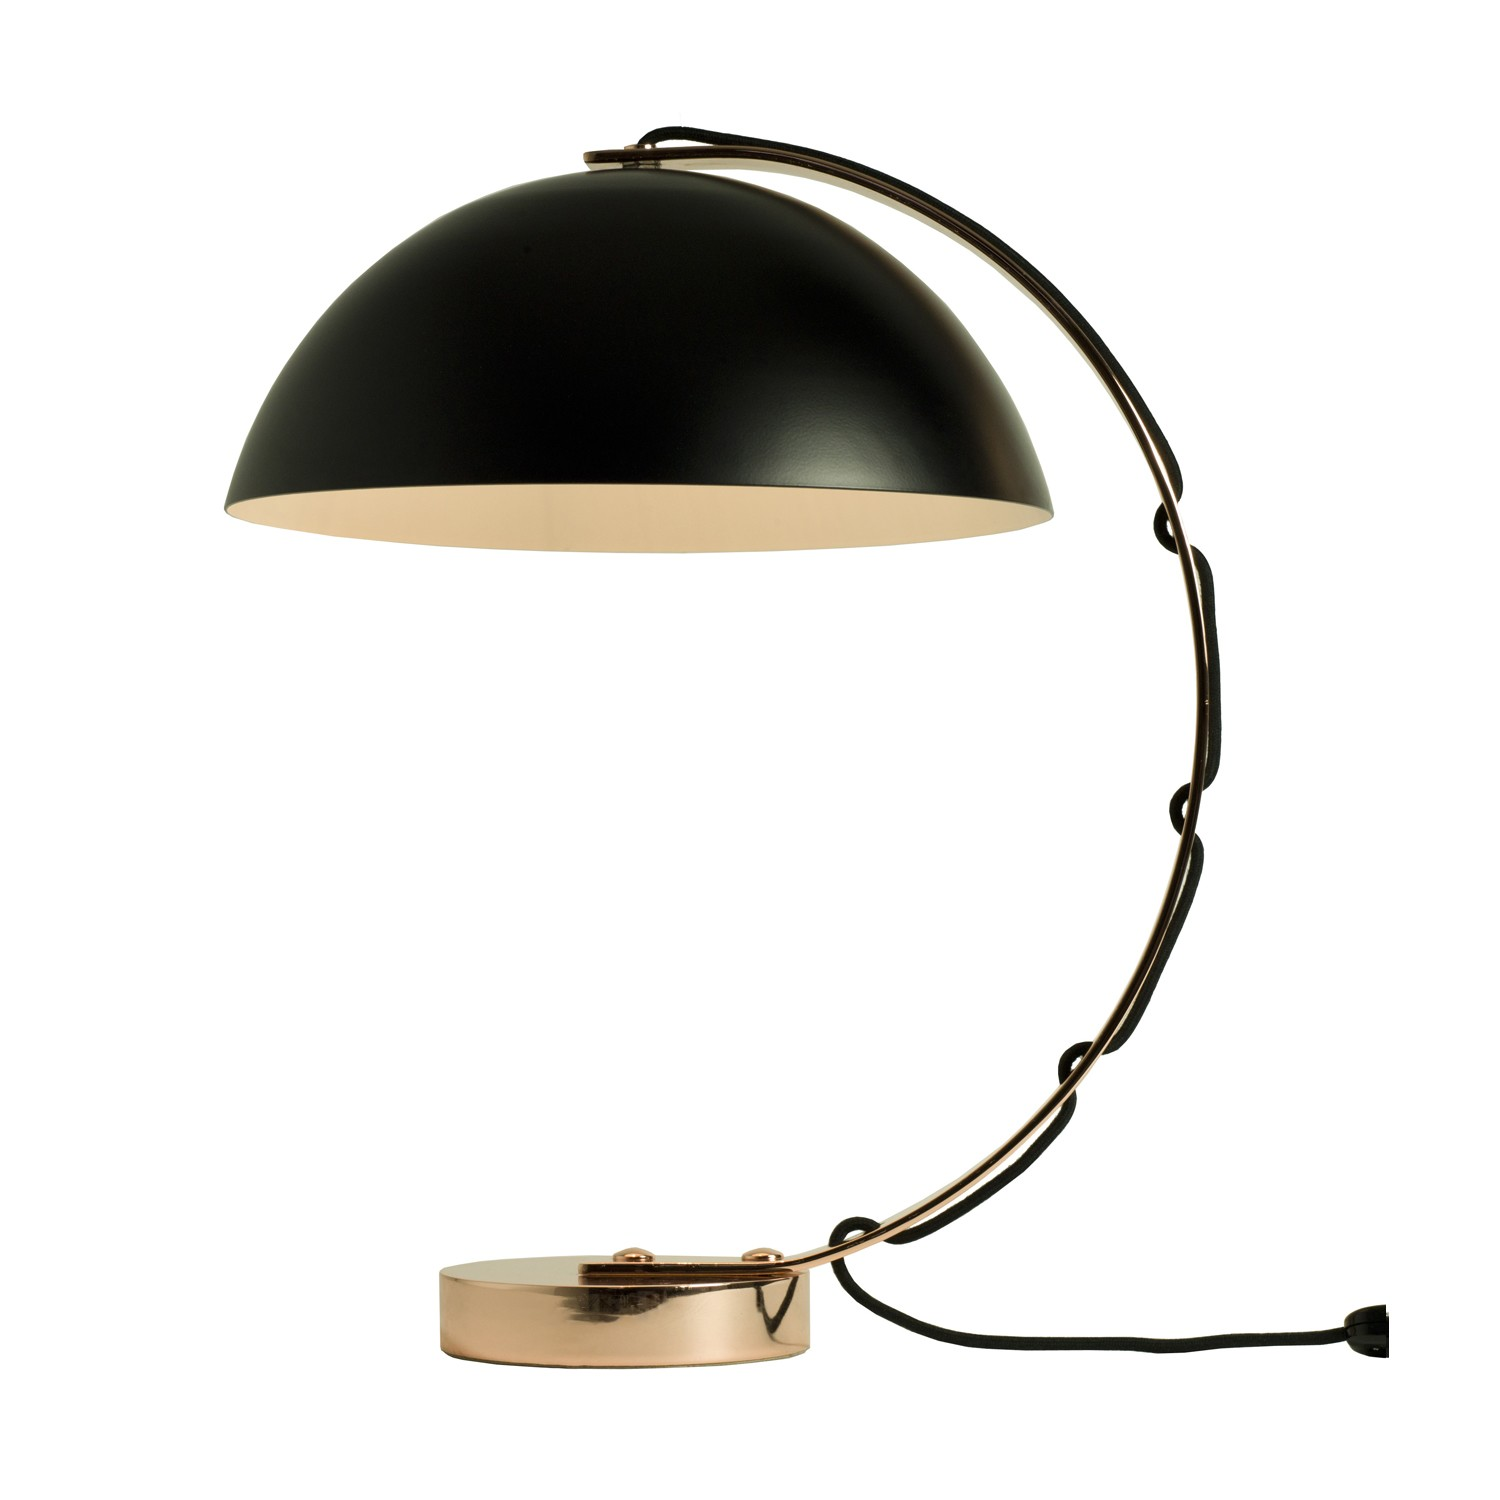 London Table Lamp Black with Copper Base